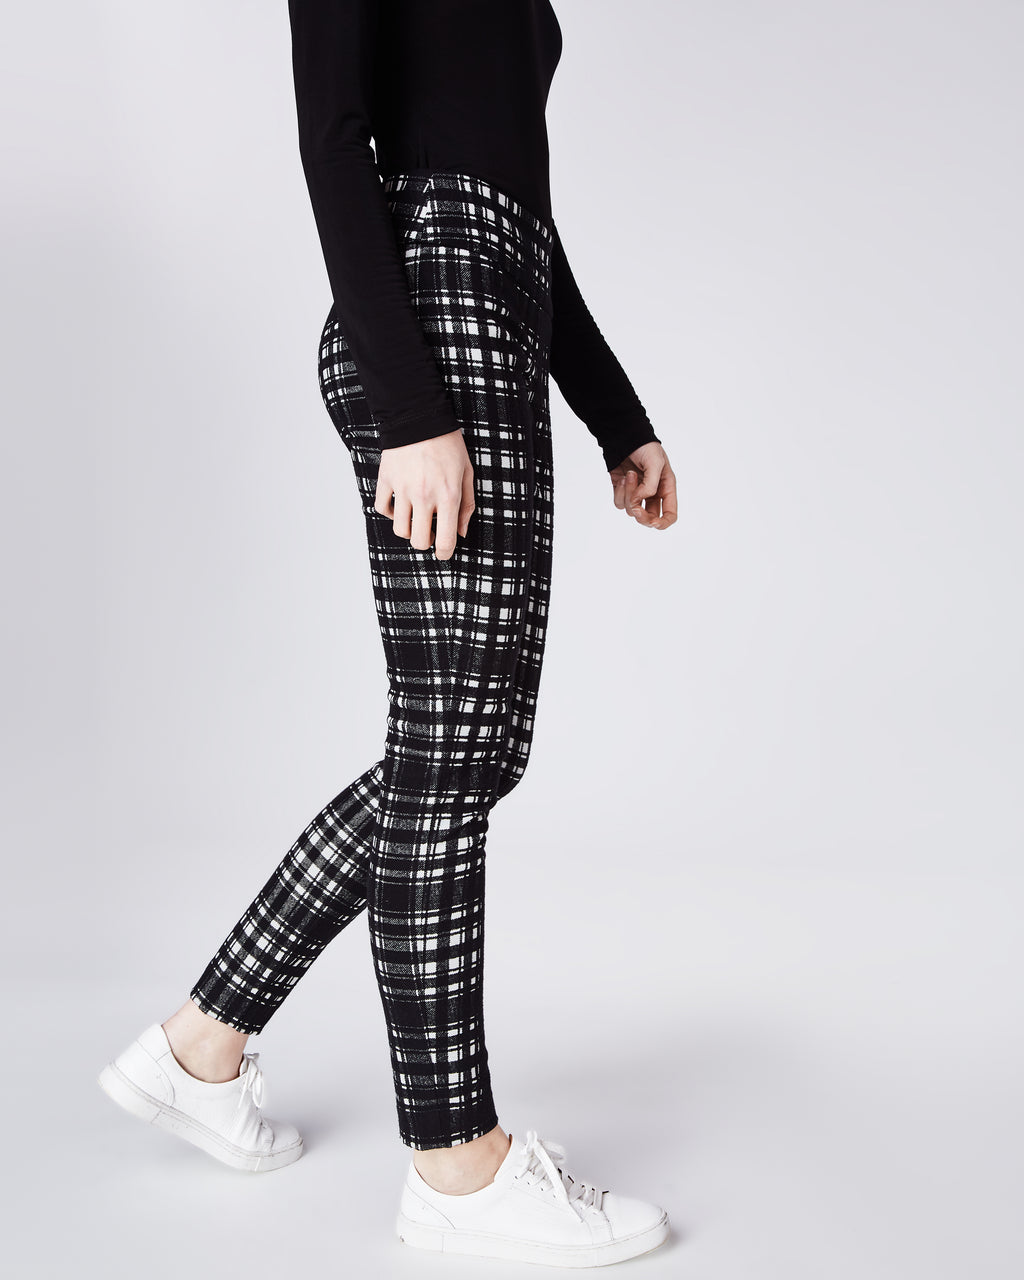 BI10149 - BRUSHED PLAID NINA PANT - bottoms - pants - The must have for Fall. In a brushed black and white plaid, these pants feature a skinny fit and concealed zipper for closure. Perfectly paired with the Brushed Plaid Blazer. Unlined.